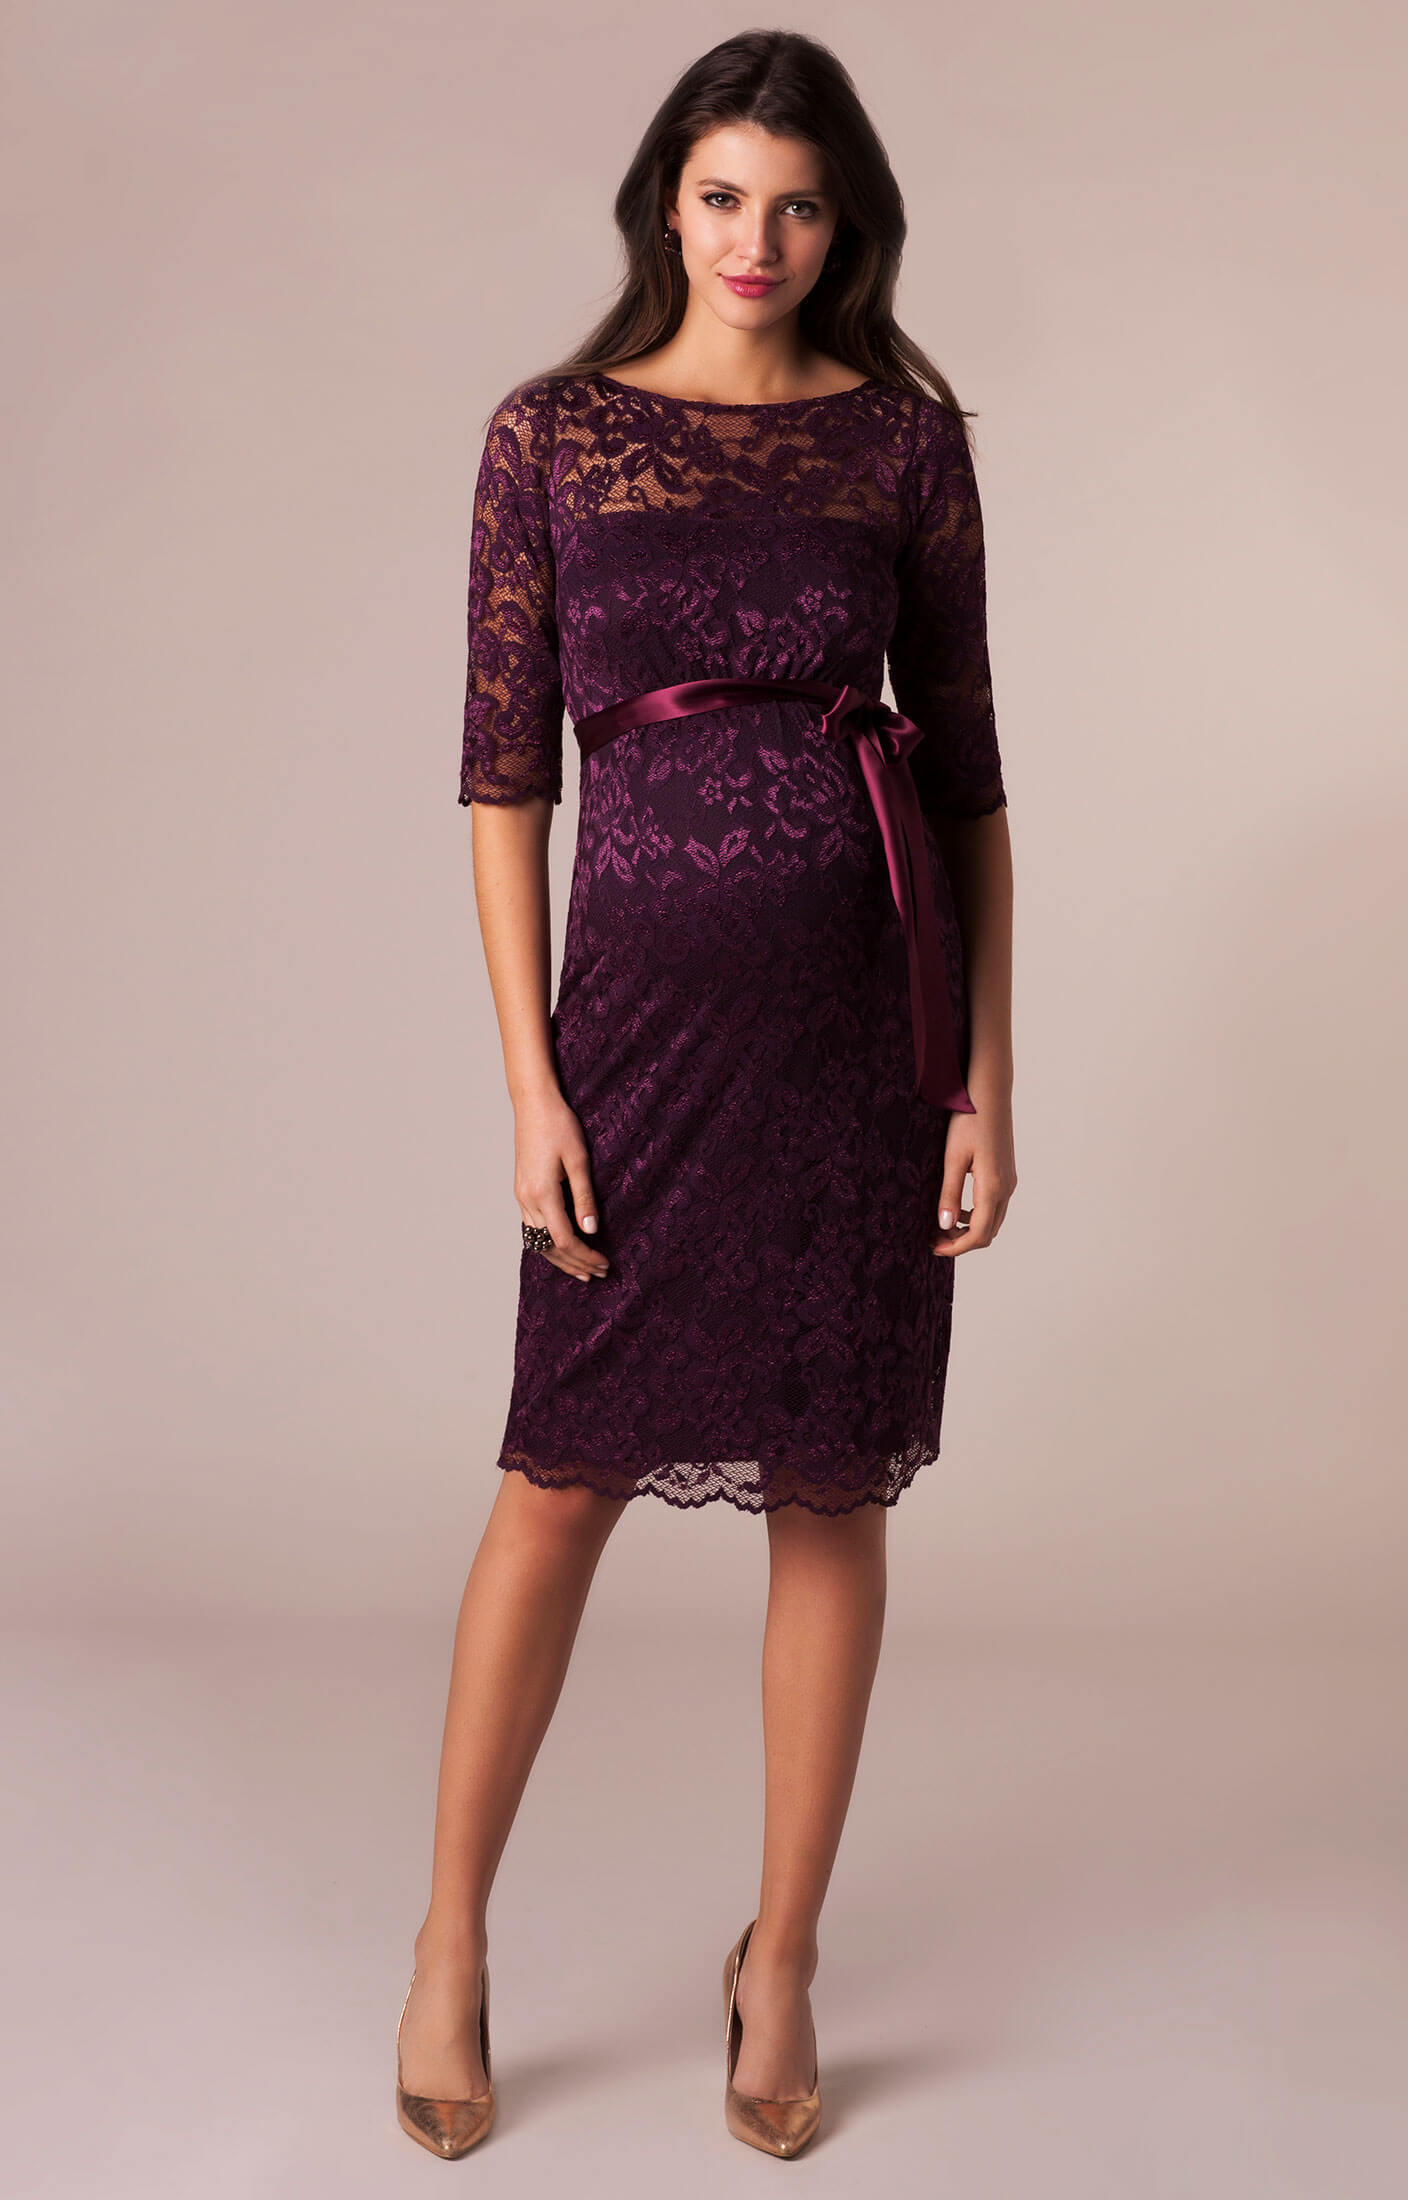 13 Elegant Bordeaux Kleid Spezialgebiet17 Genial Bordeaux Kleid Boutique